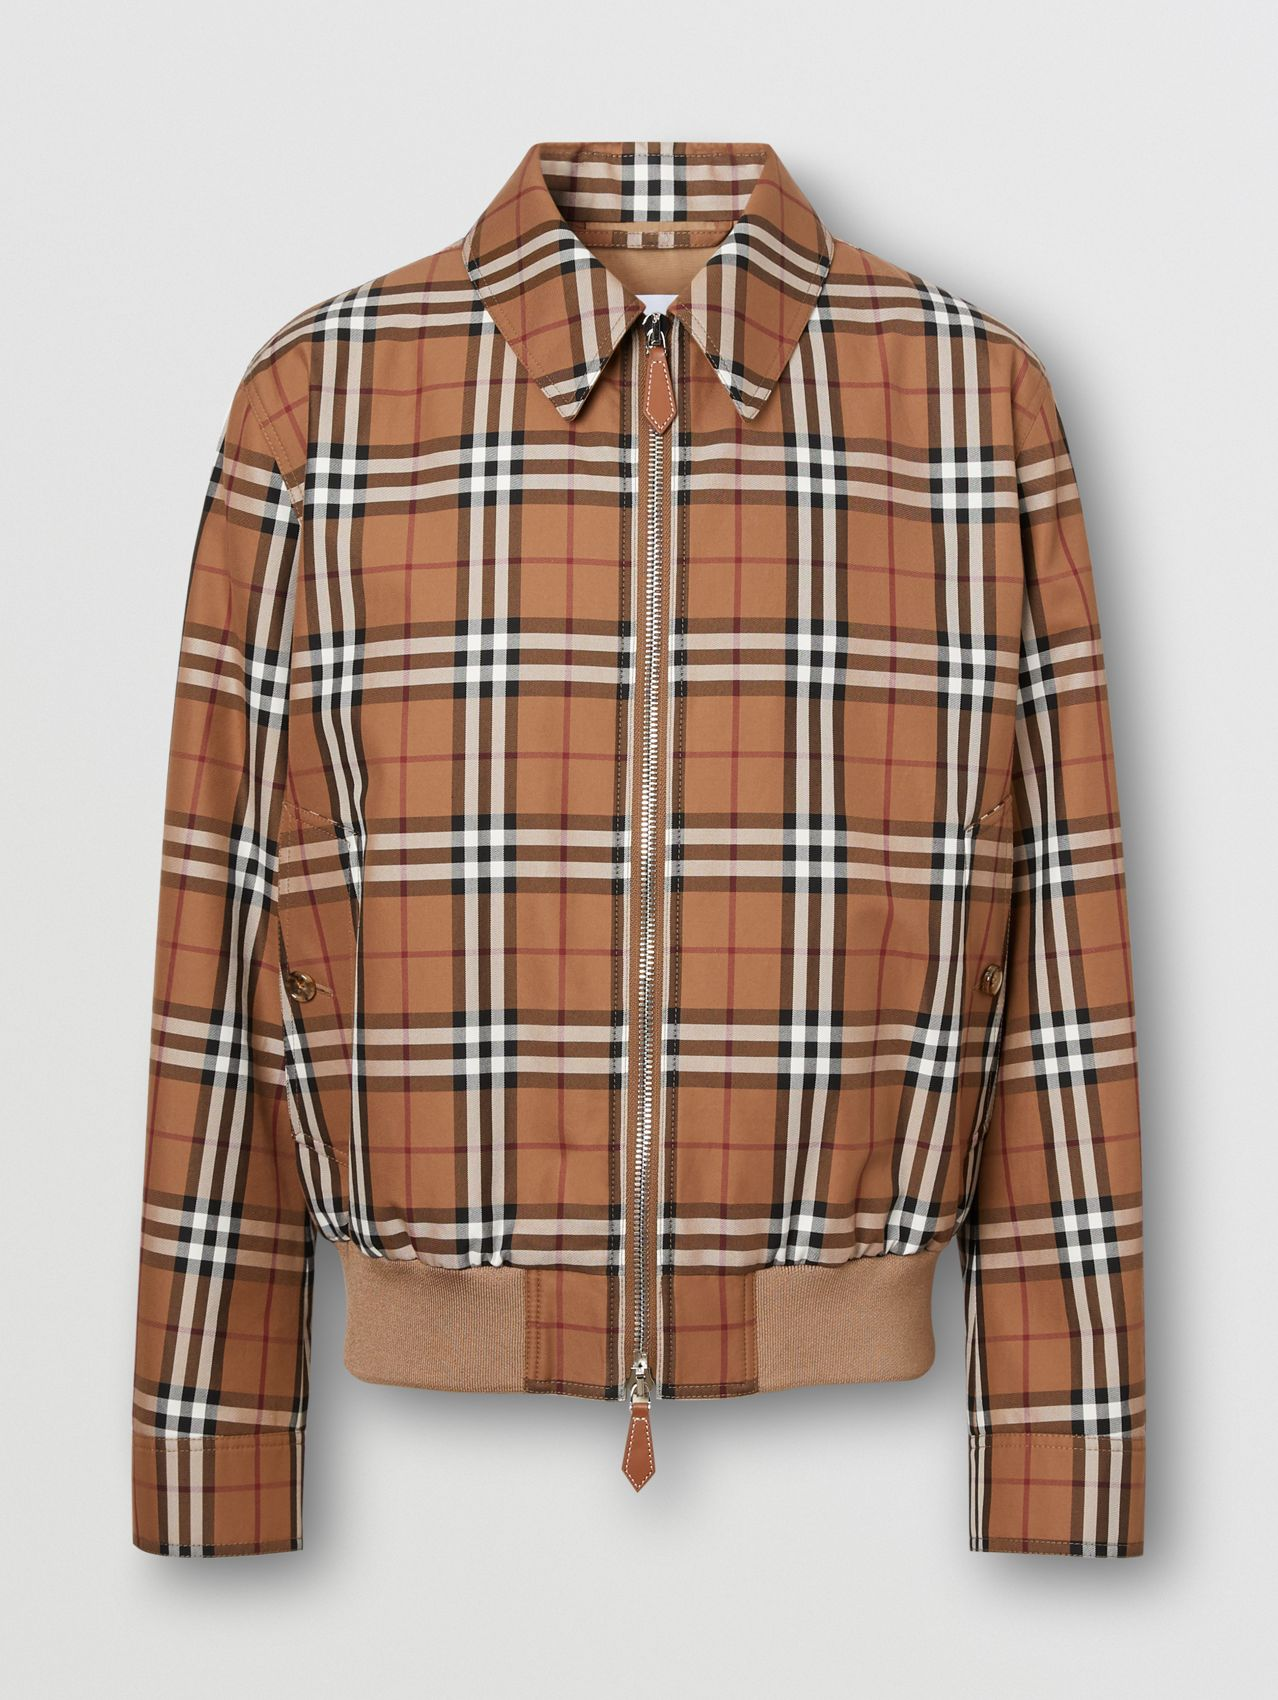 Logo Appliqué Vintage Check Cotton Harrington Jacket in Birch Brown